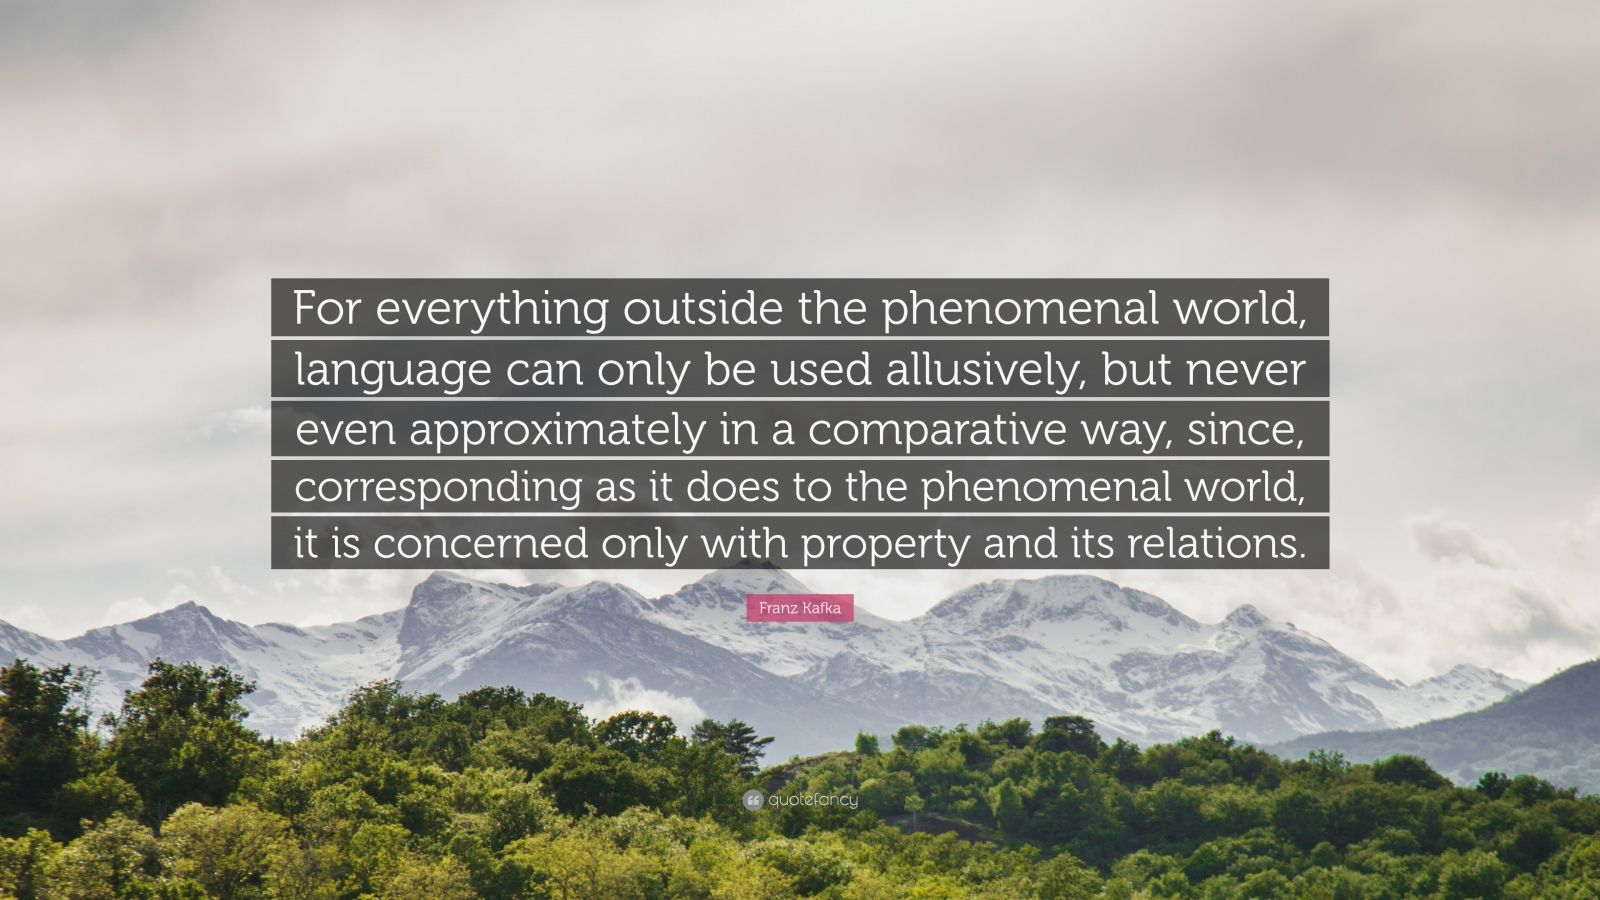 "Franz Kafka Quote: ""For everything outside the phenomenal world, language can only be used allusively, but never even approximately in a comparative way, since, corresponding as it does to the phenomenal world, it is concerned only with property and its relations."""